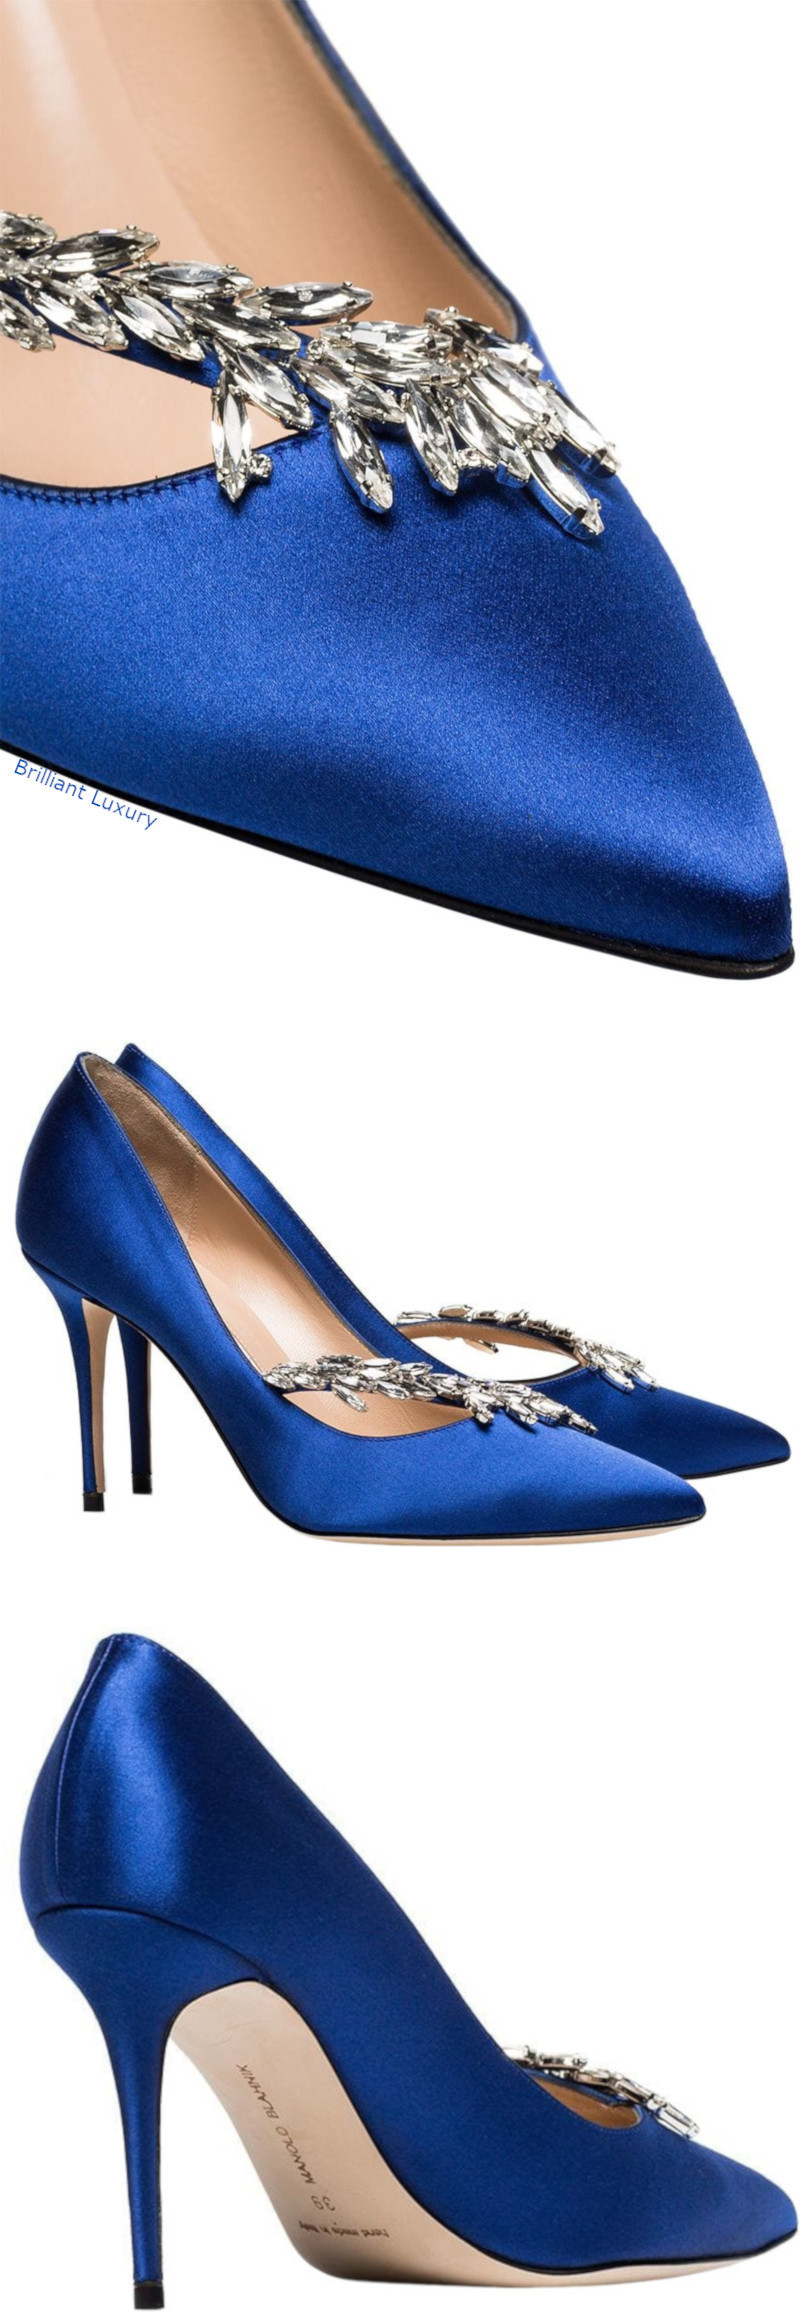 Manolo Blahnik blue Nadira satin ribbon crystal pumps